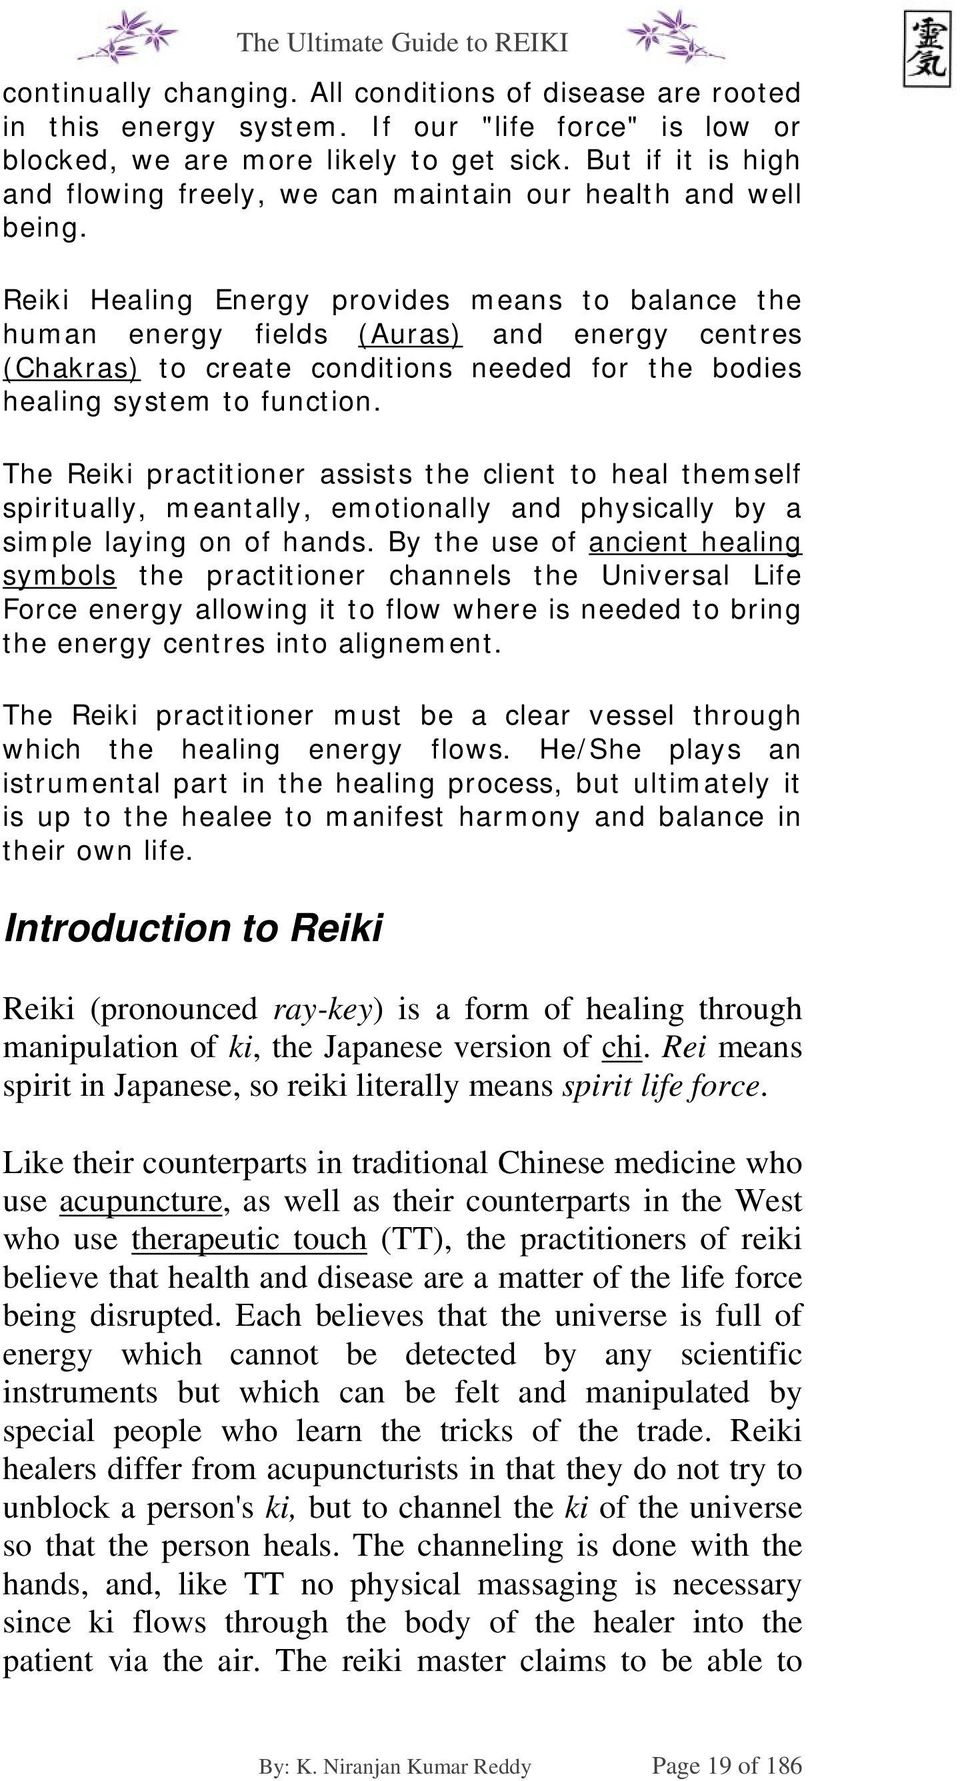 Reiki Healing Energy provides means to balance the human energy fields (Auras) and energy centres (Chakras) to create conditions needed for the bodies healing system to function.